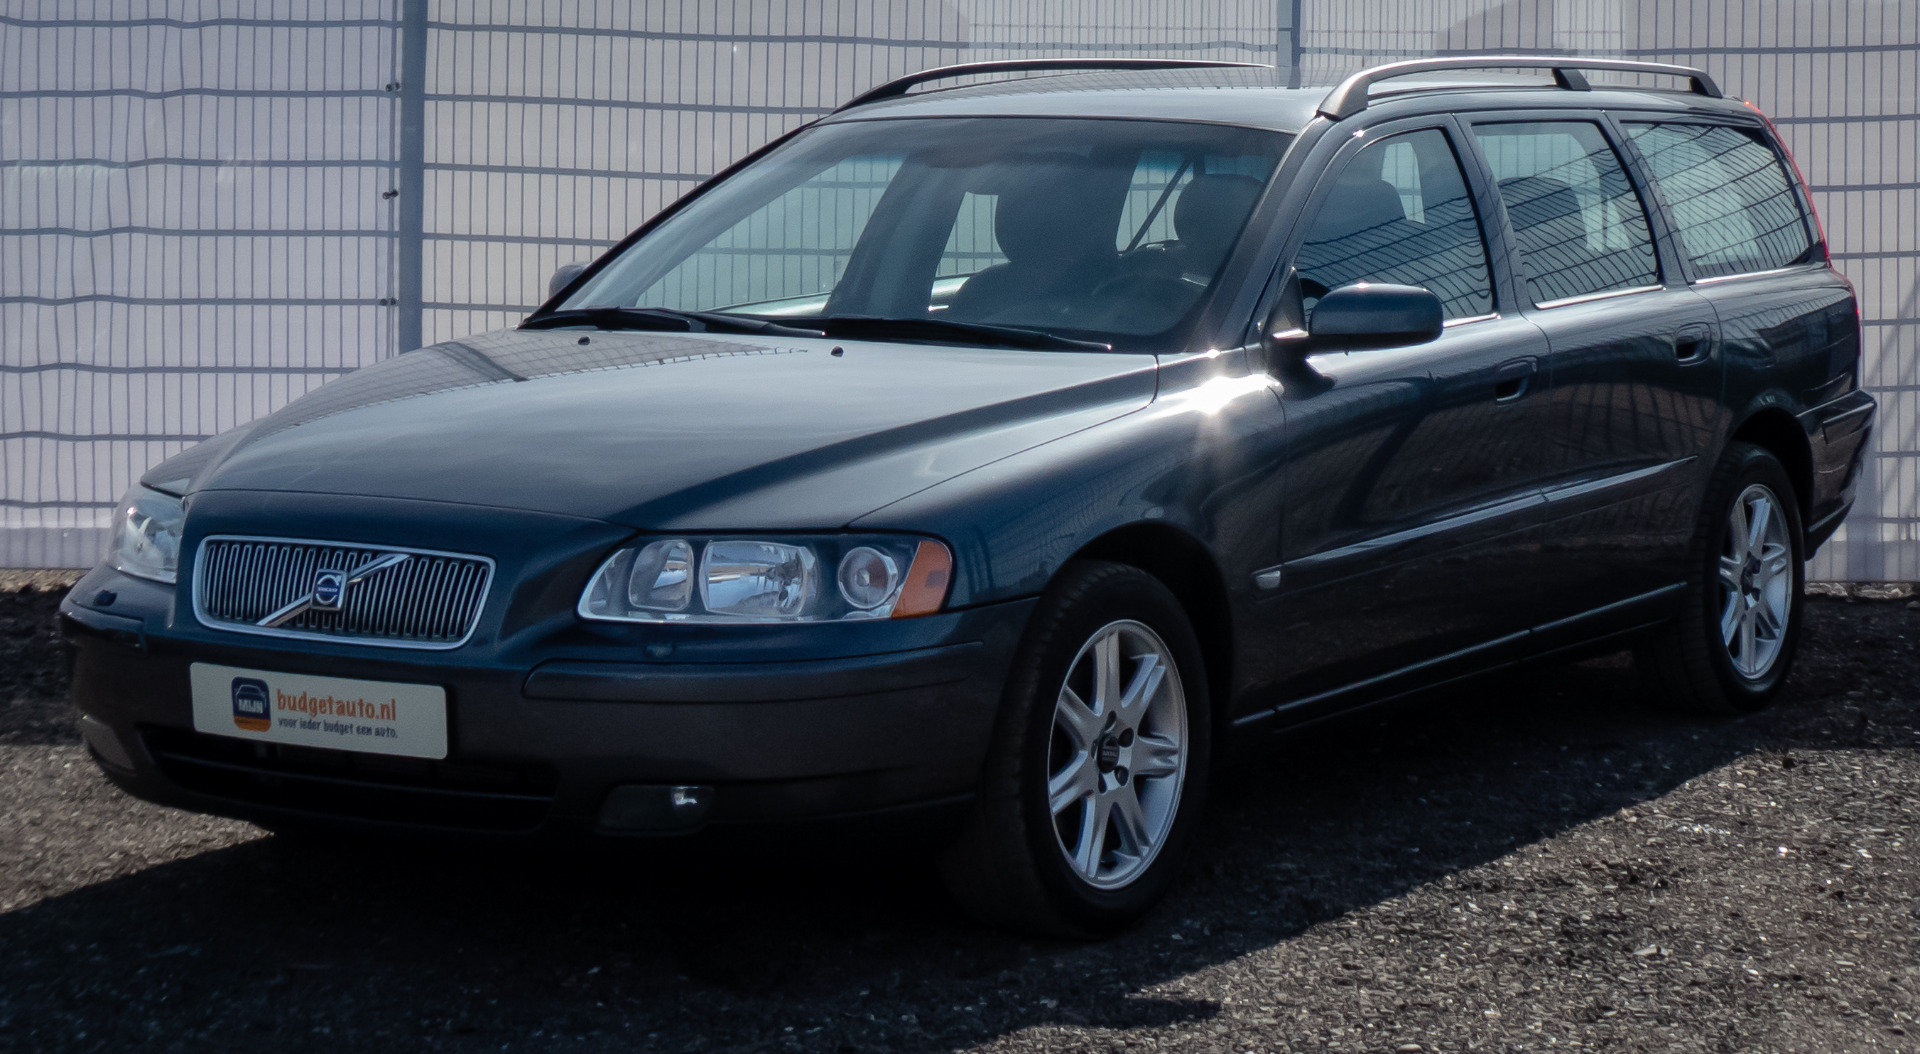 Volvo V70 2.4 (140 PK) Momentum (7-persoons)